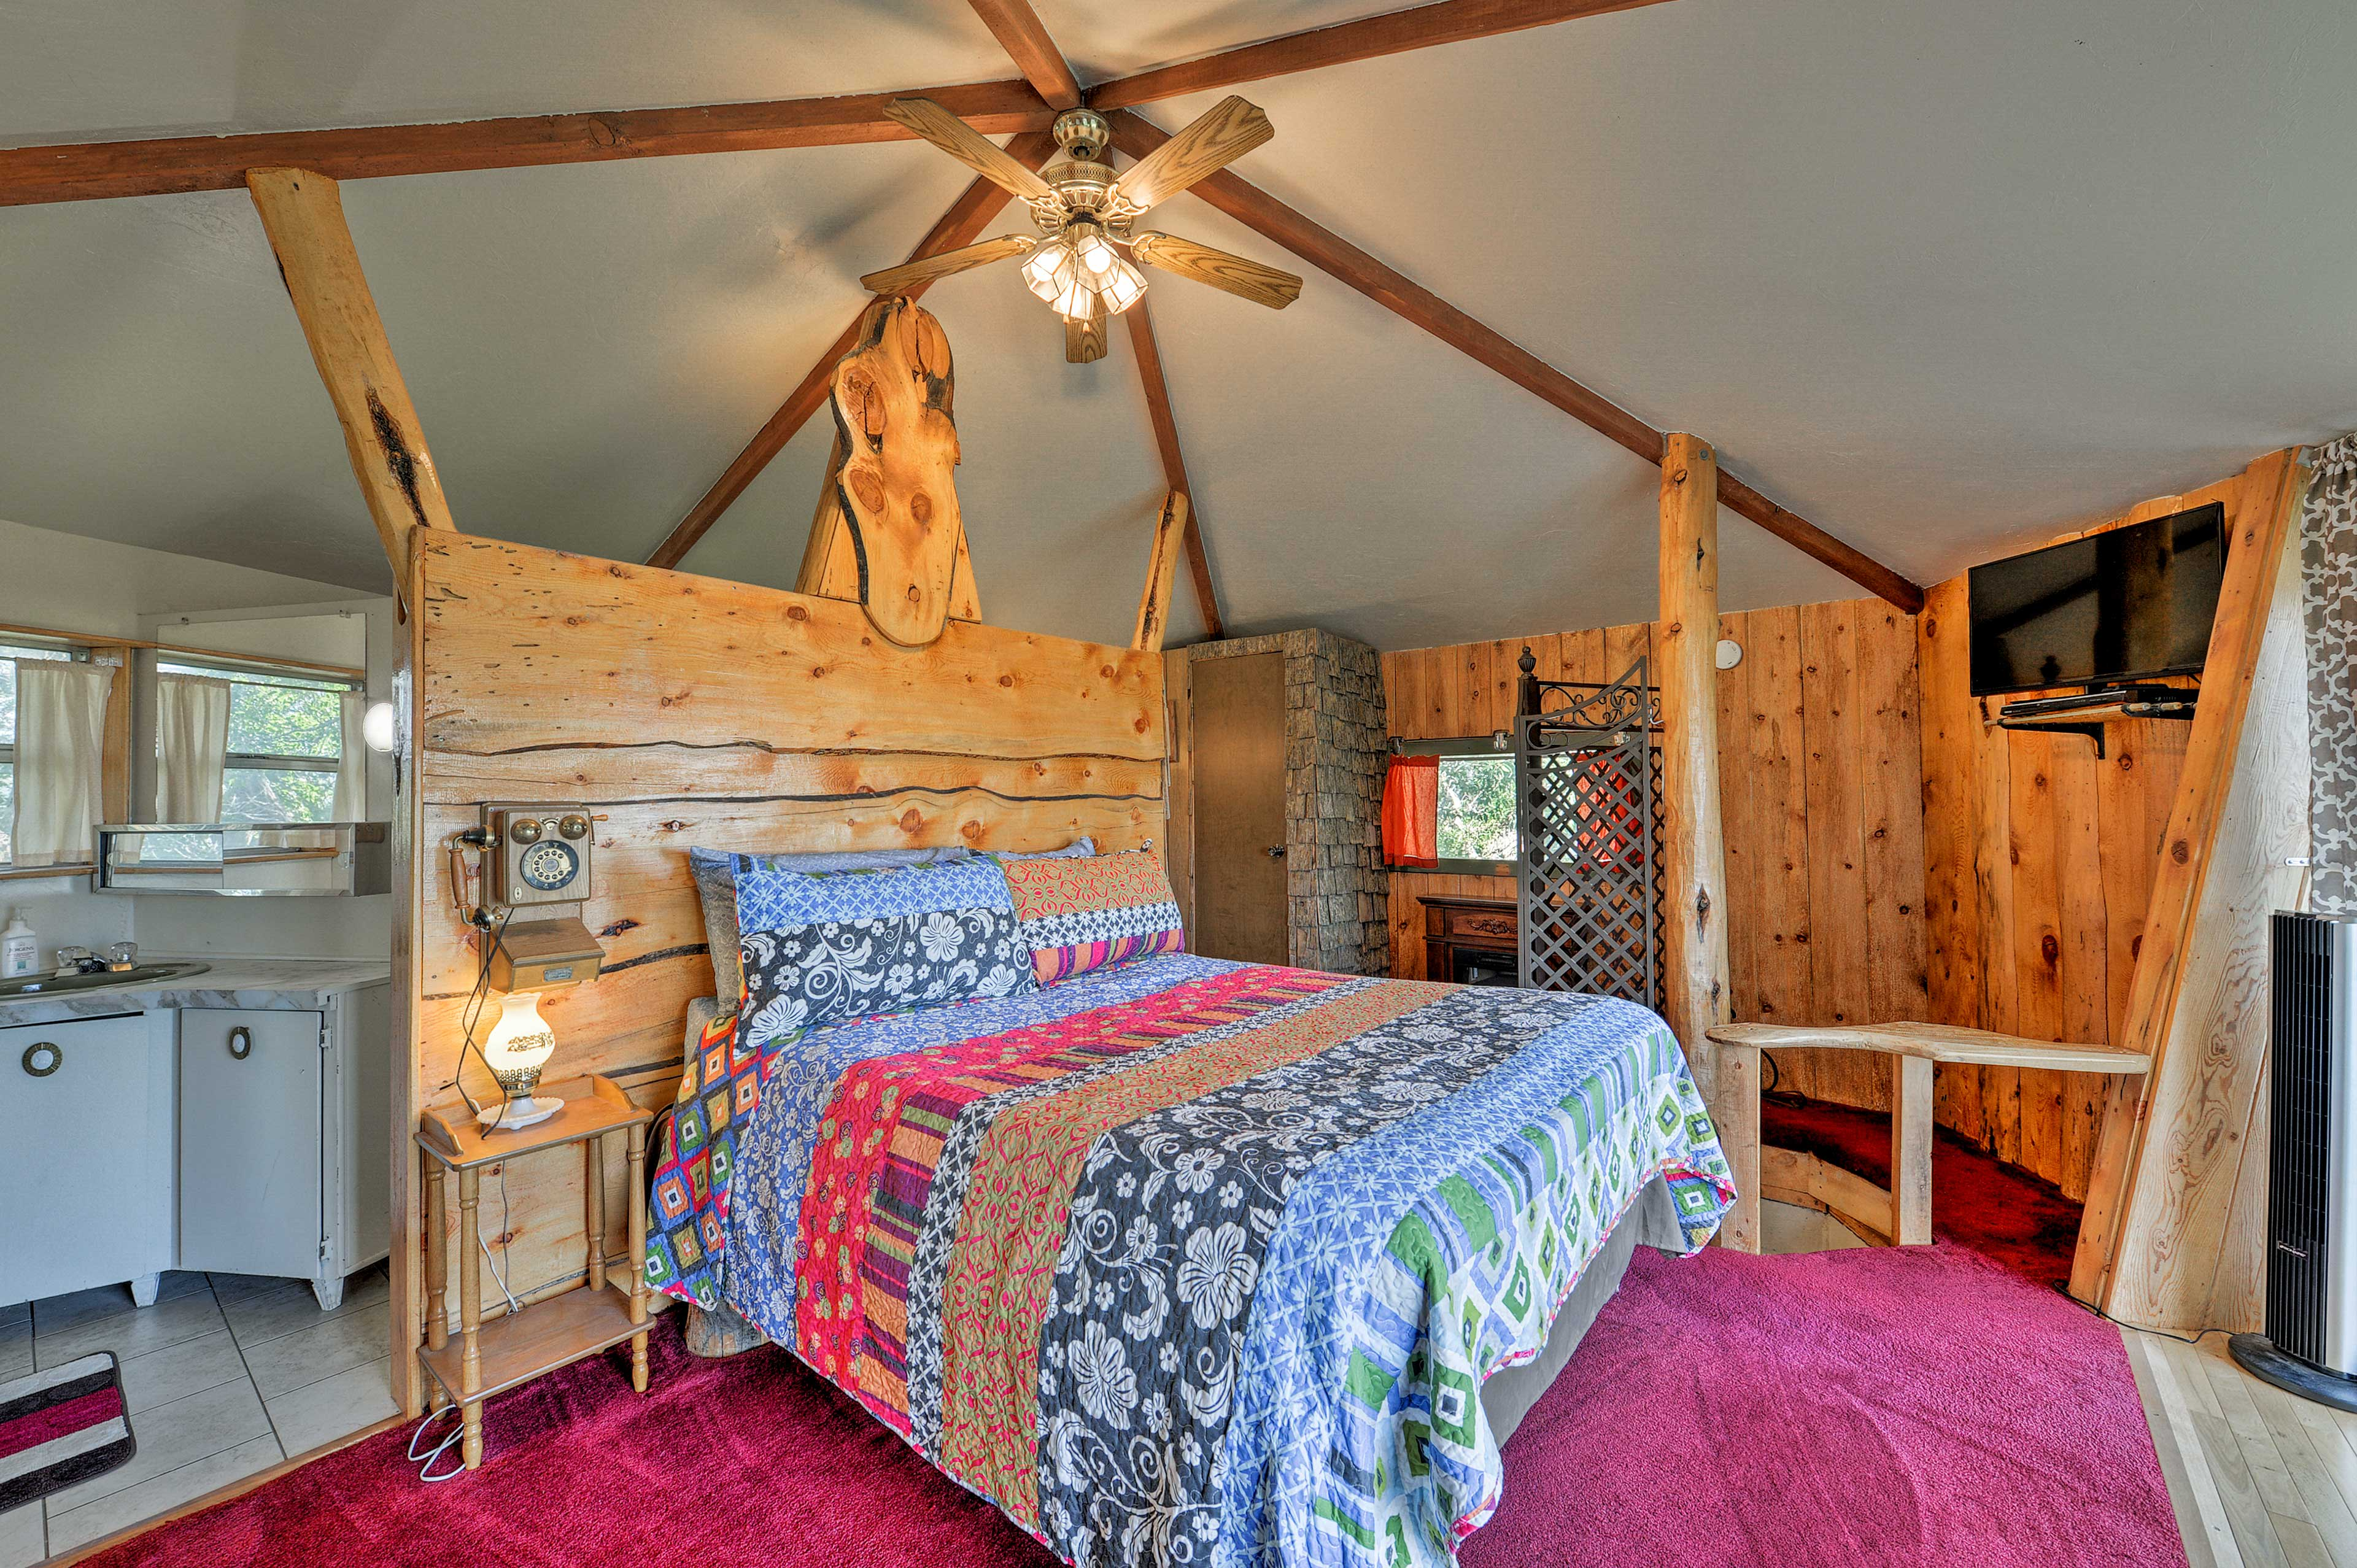 Wake up ready to explore Yellowstone National Park in the homey bedroom.